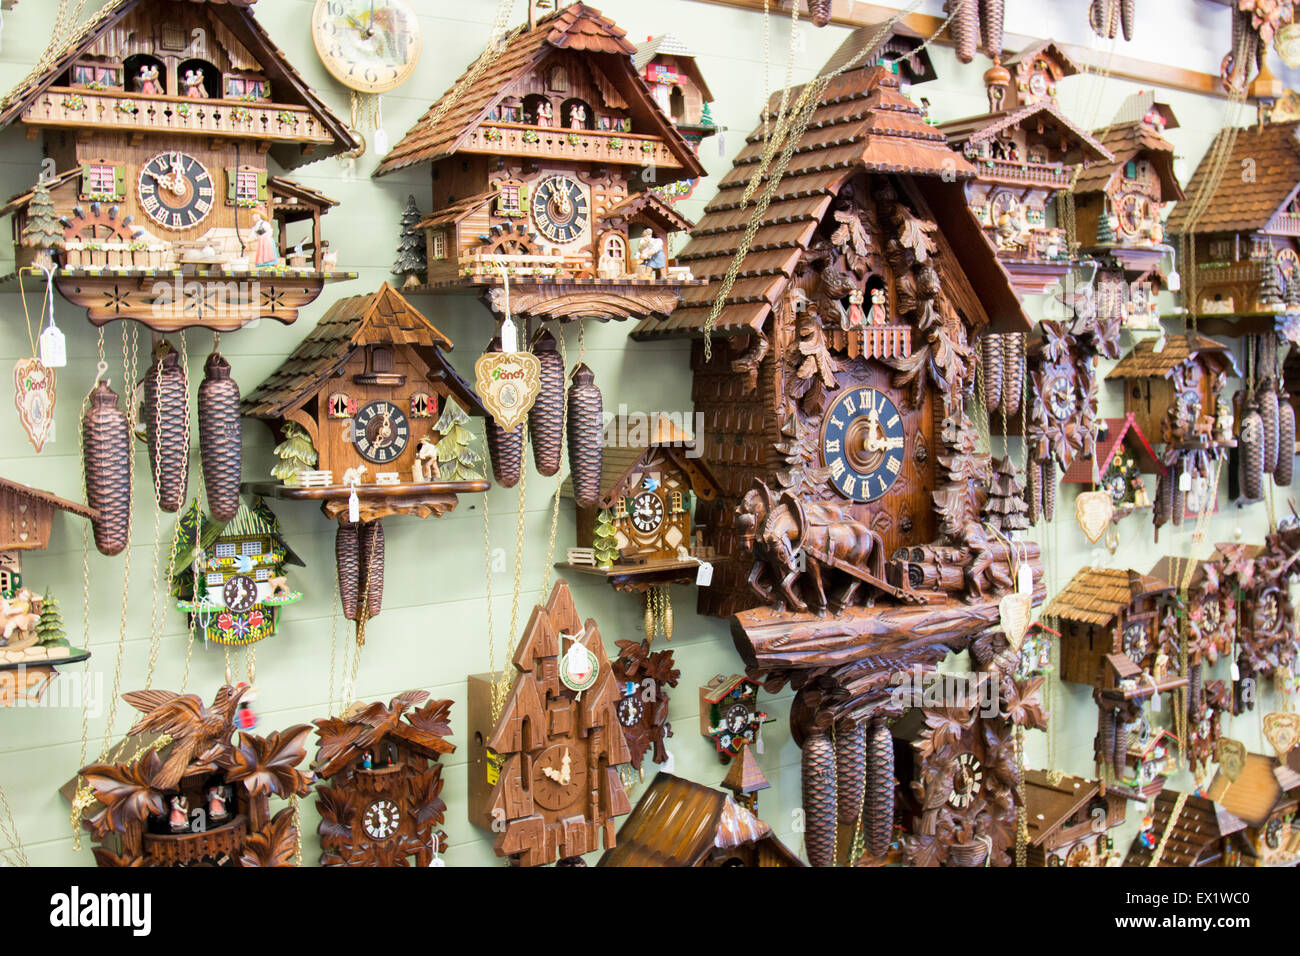 Cuckoo Clocks For Sale In A Store In The Regional New South Wales Stock Photo Alamy